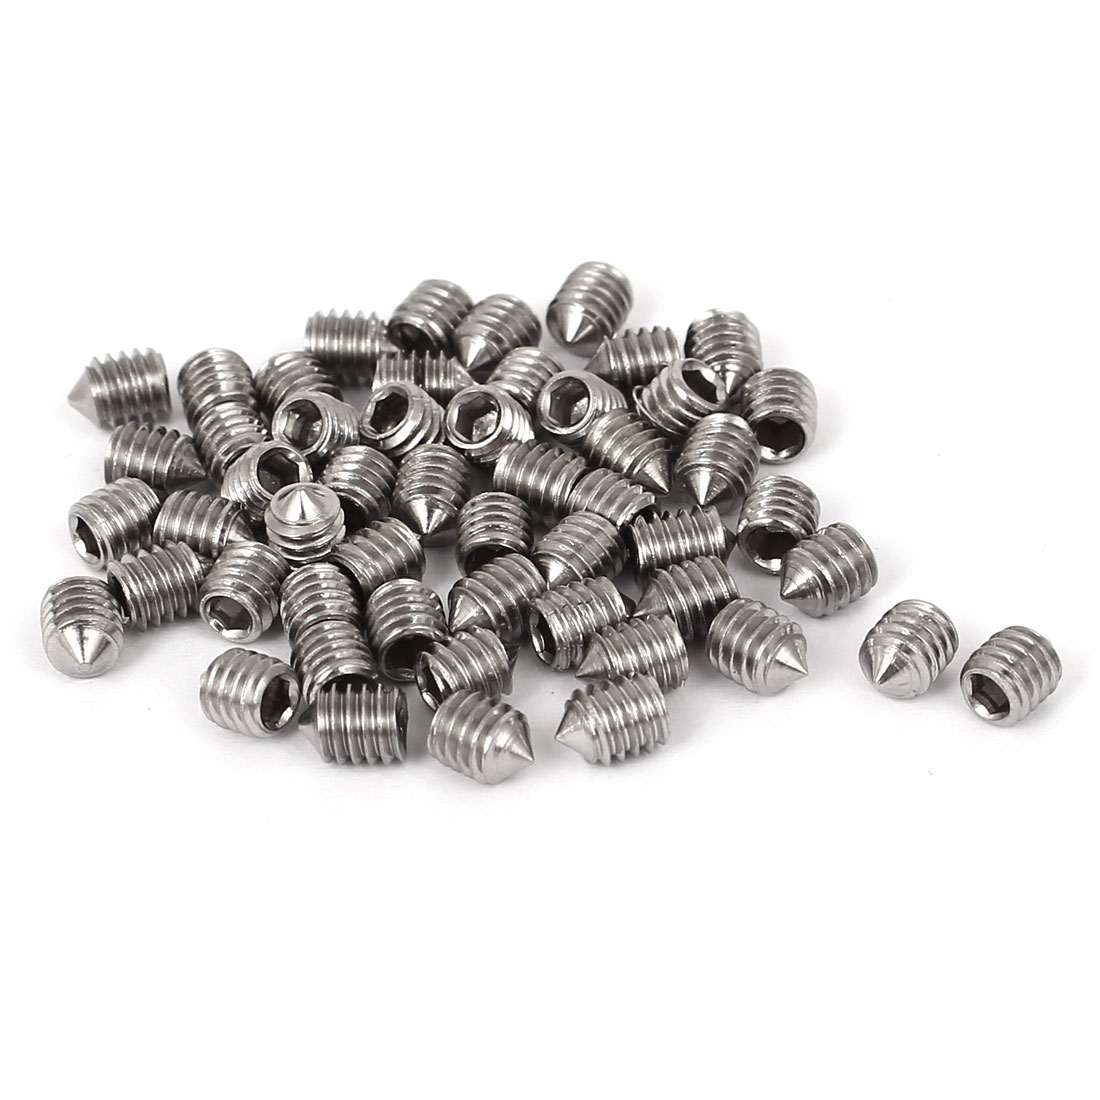 4mm x 5mm Thread 304 Stainless Steel Hex Socket Cone Point Grub Screws 50 Pcs